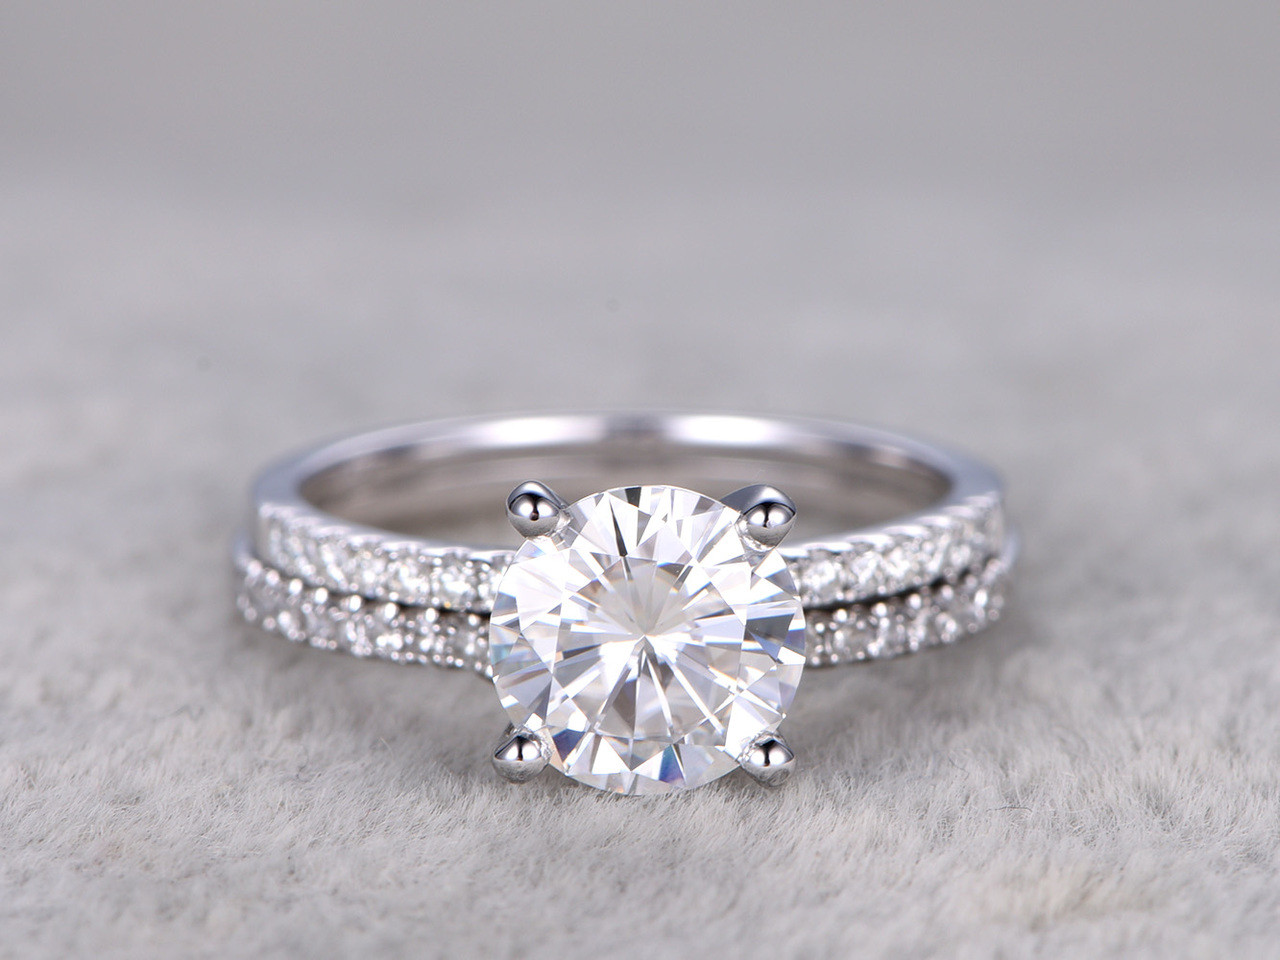 index platinum gold cut in white moissanite ring with round engagement petite